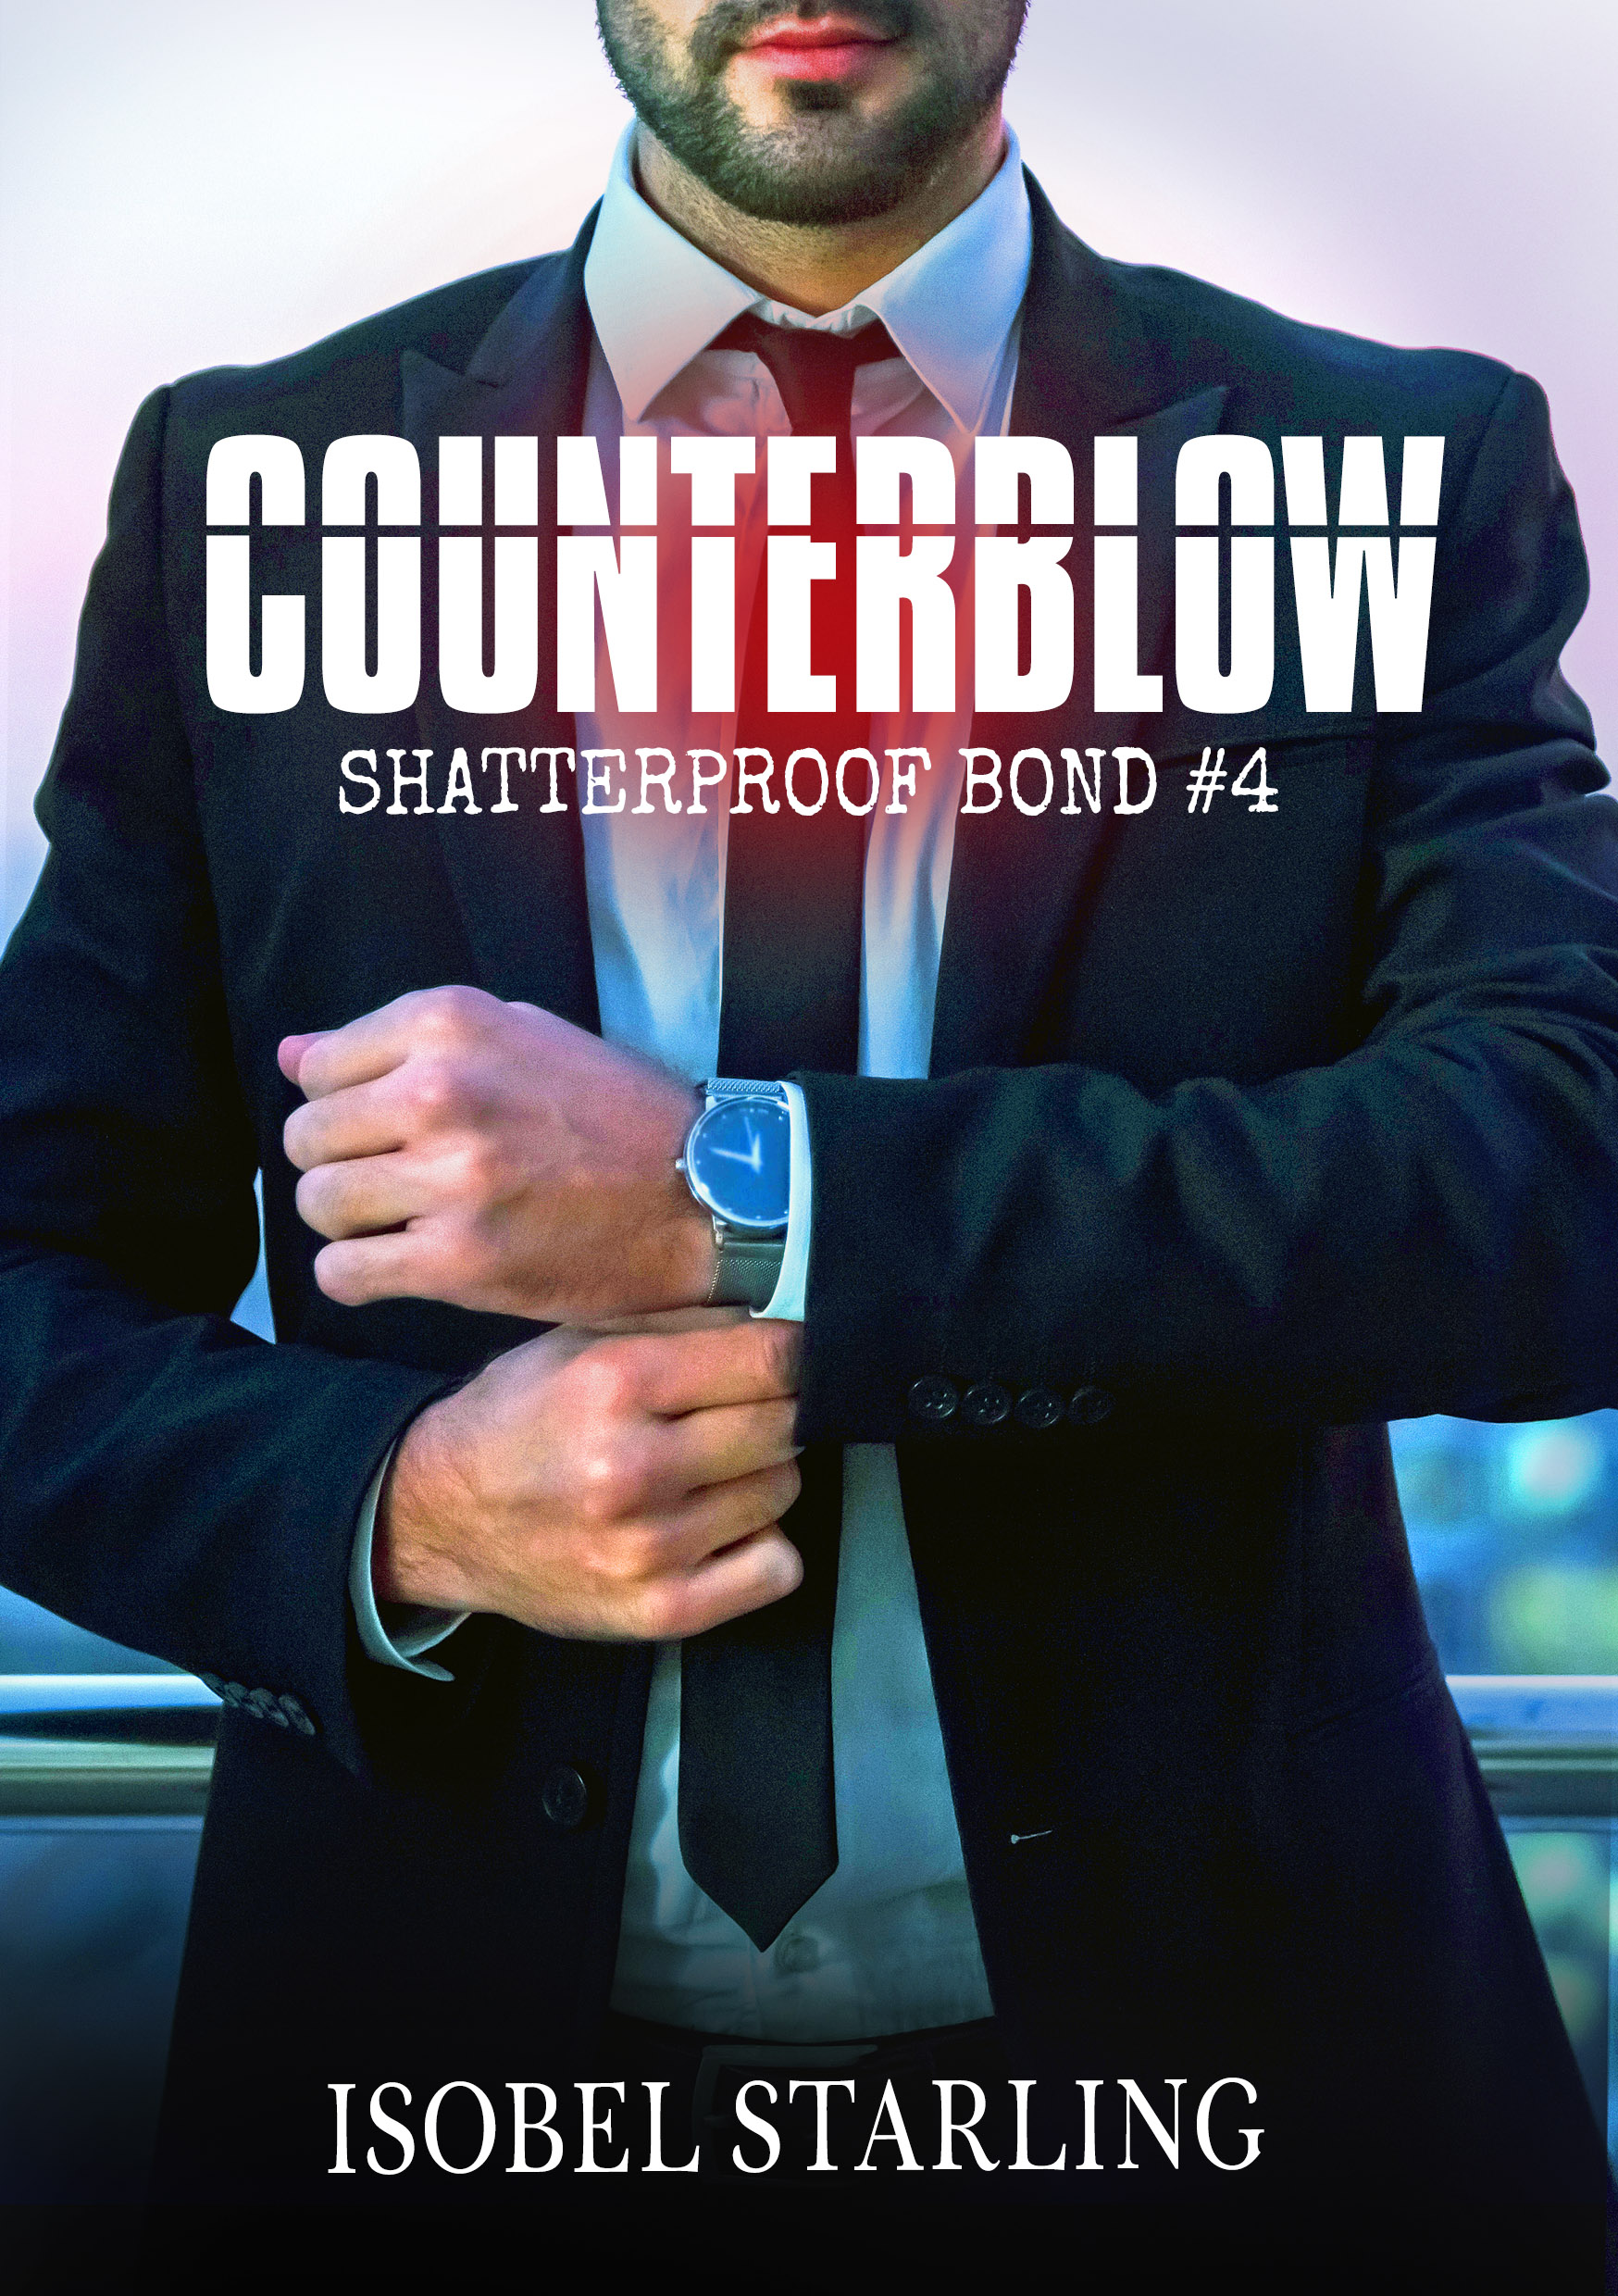 4_FINALrebrand+ counterblow cover1